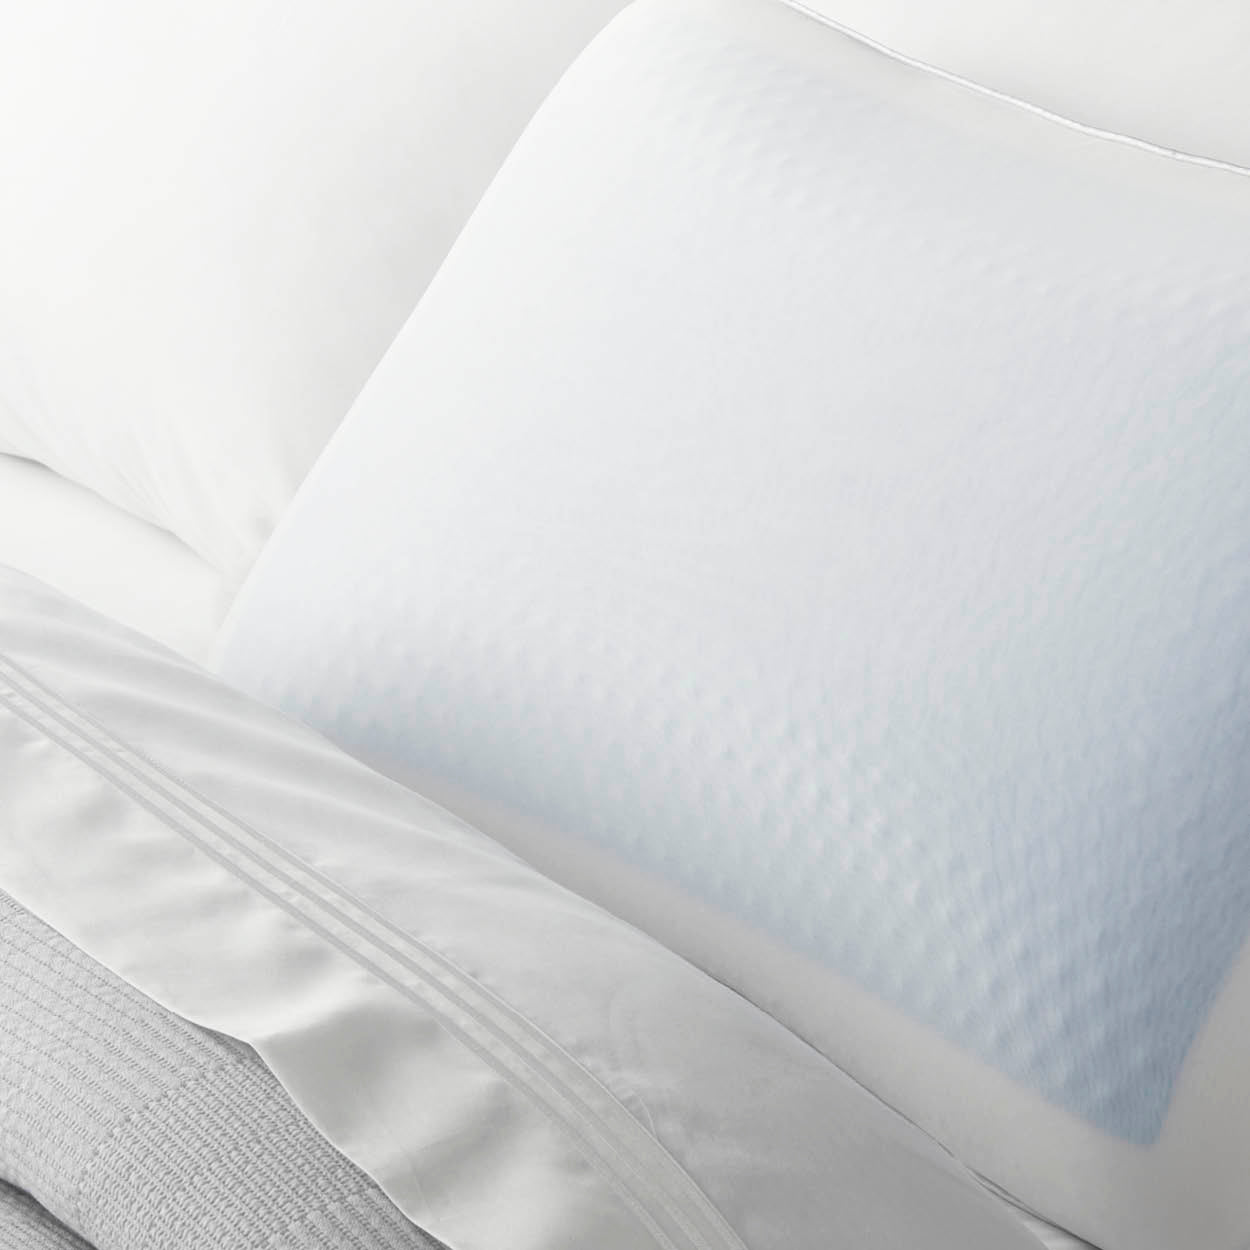 PureCare SUB-0º Hybrid Pillows Collection: Parenting Healthy